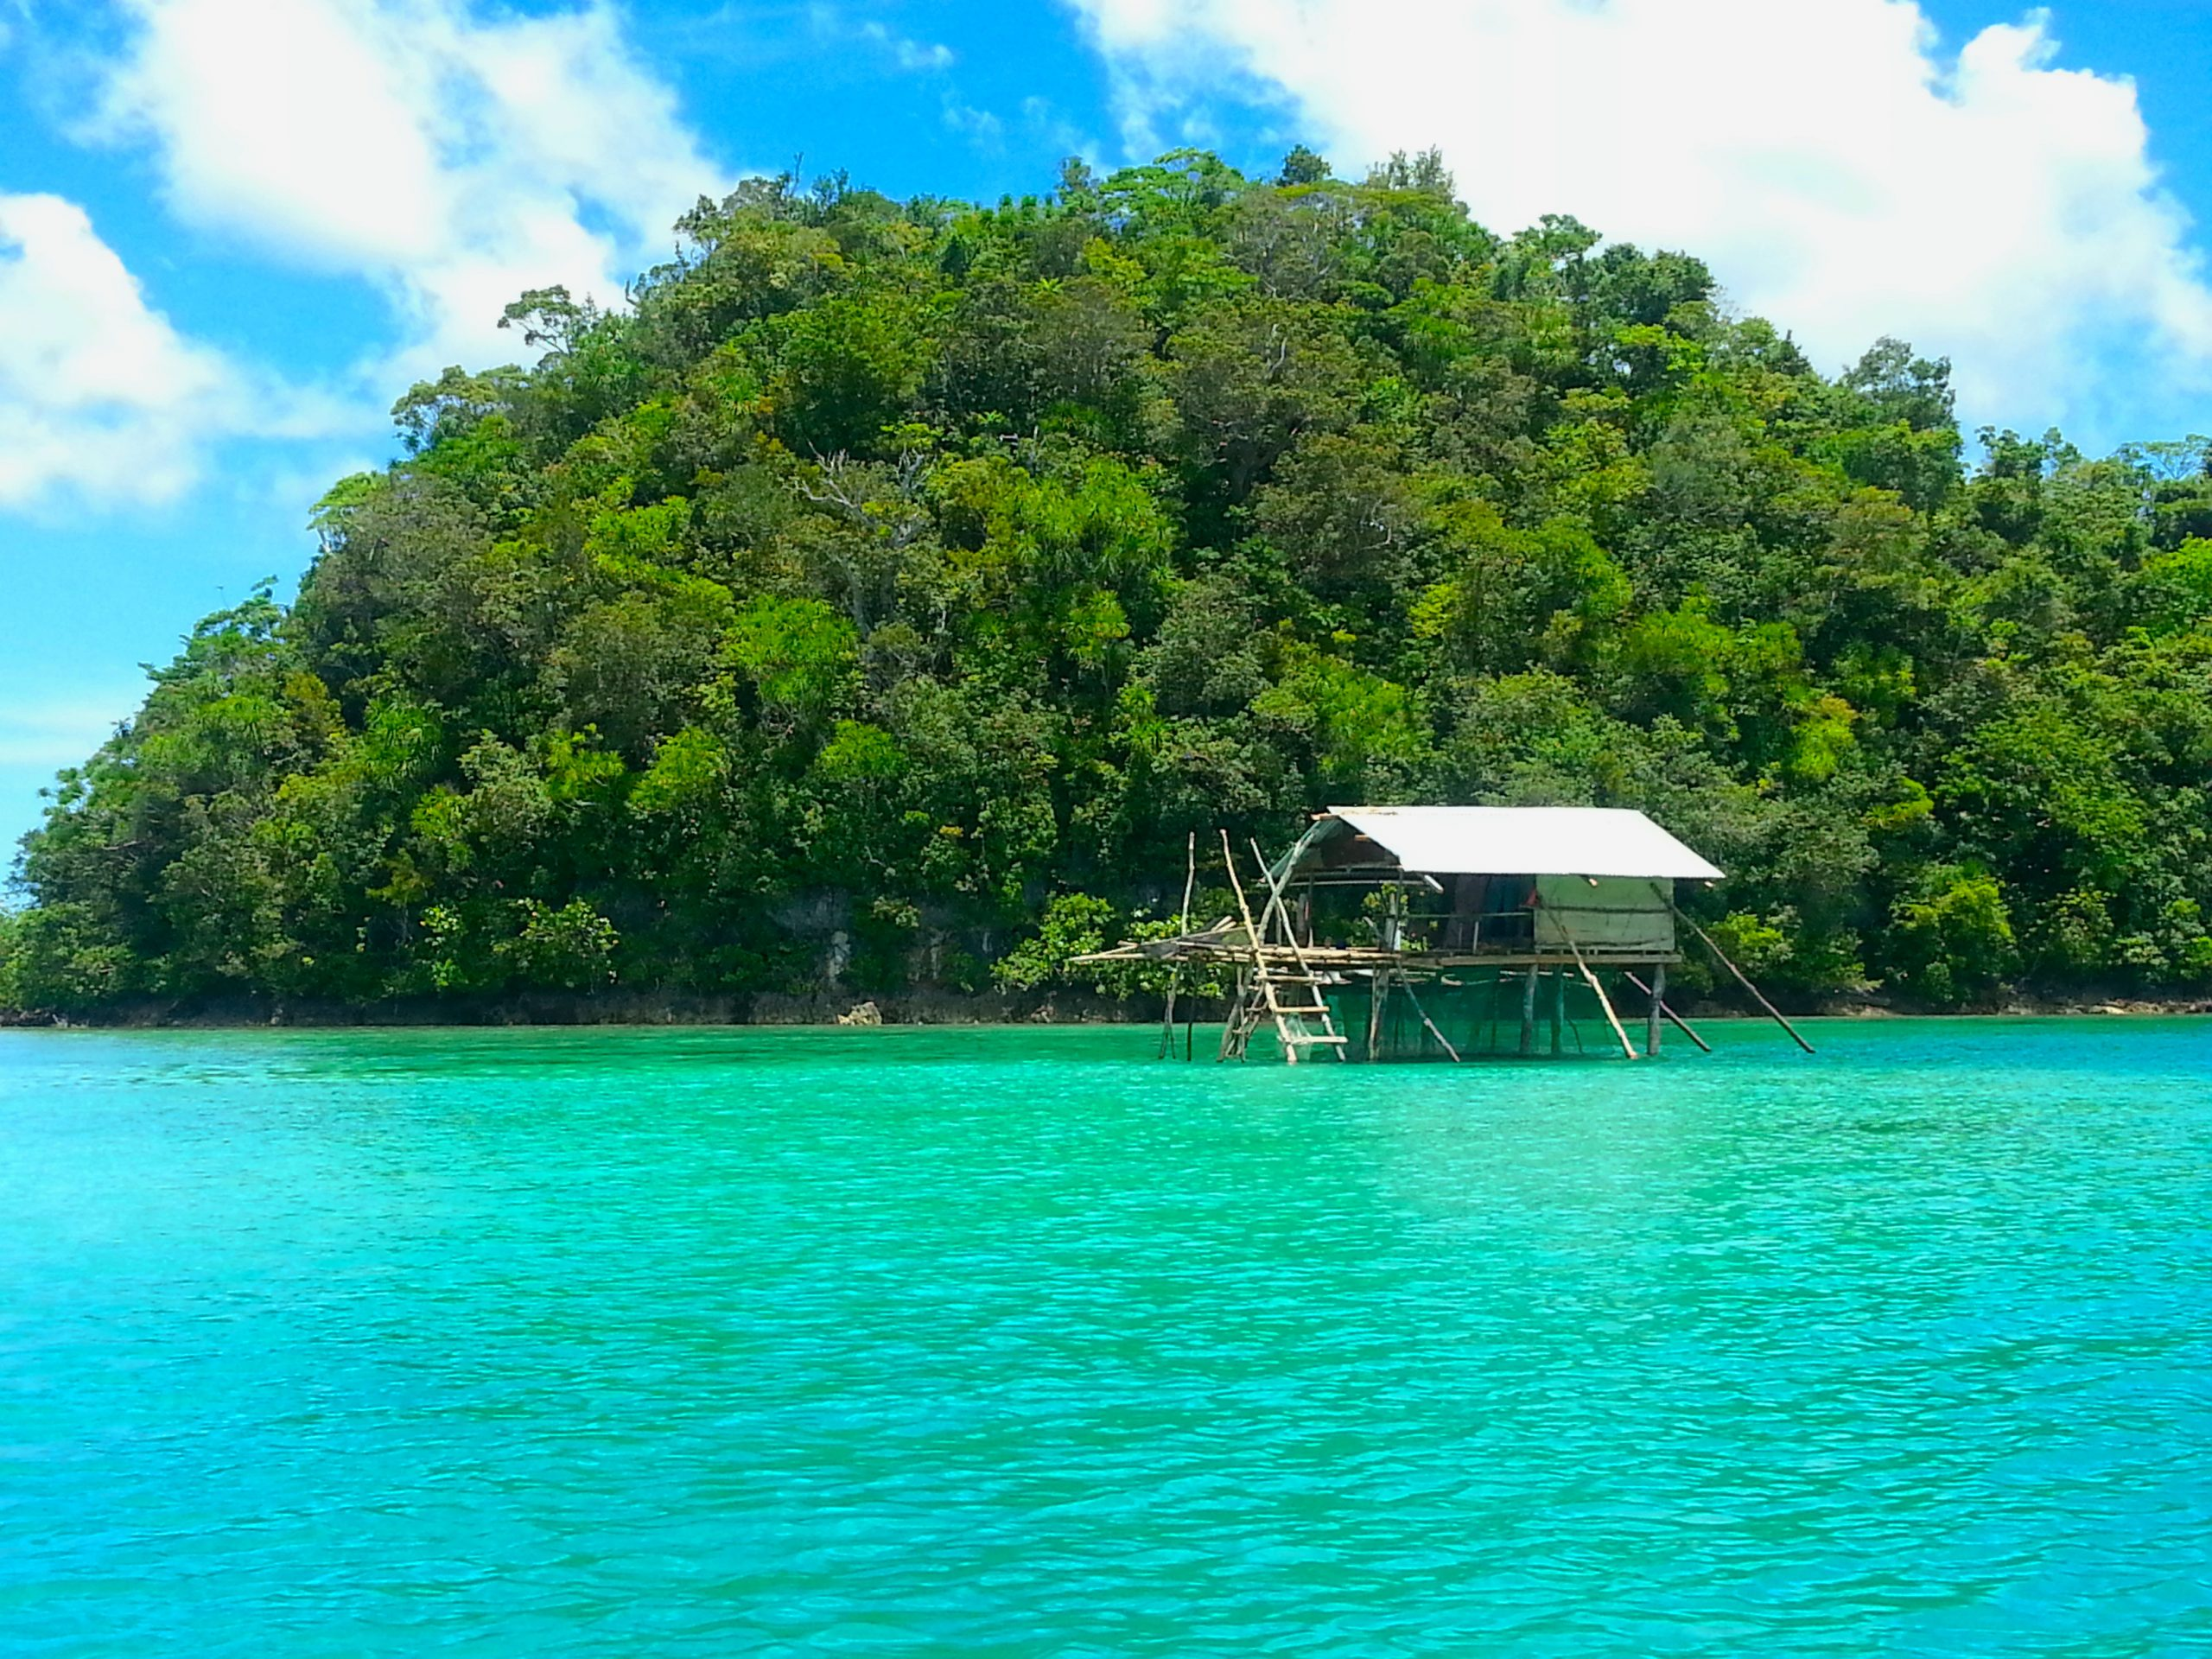 Voyages Yulgo Philippines Sugba Lagoon Siargao